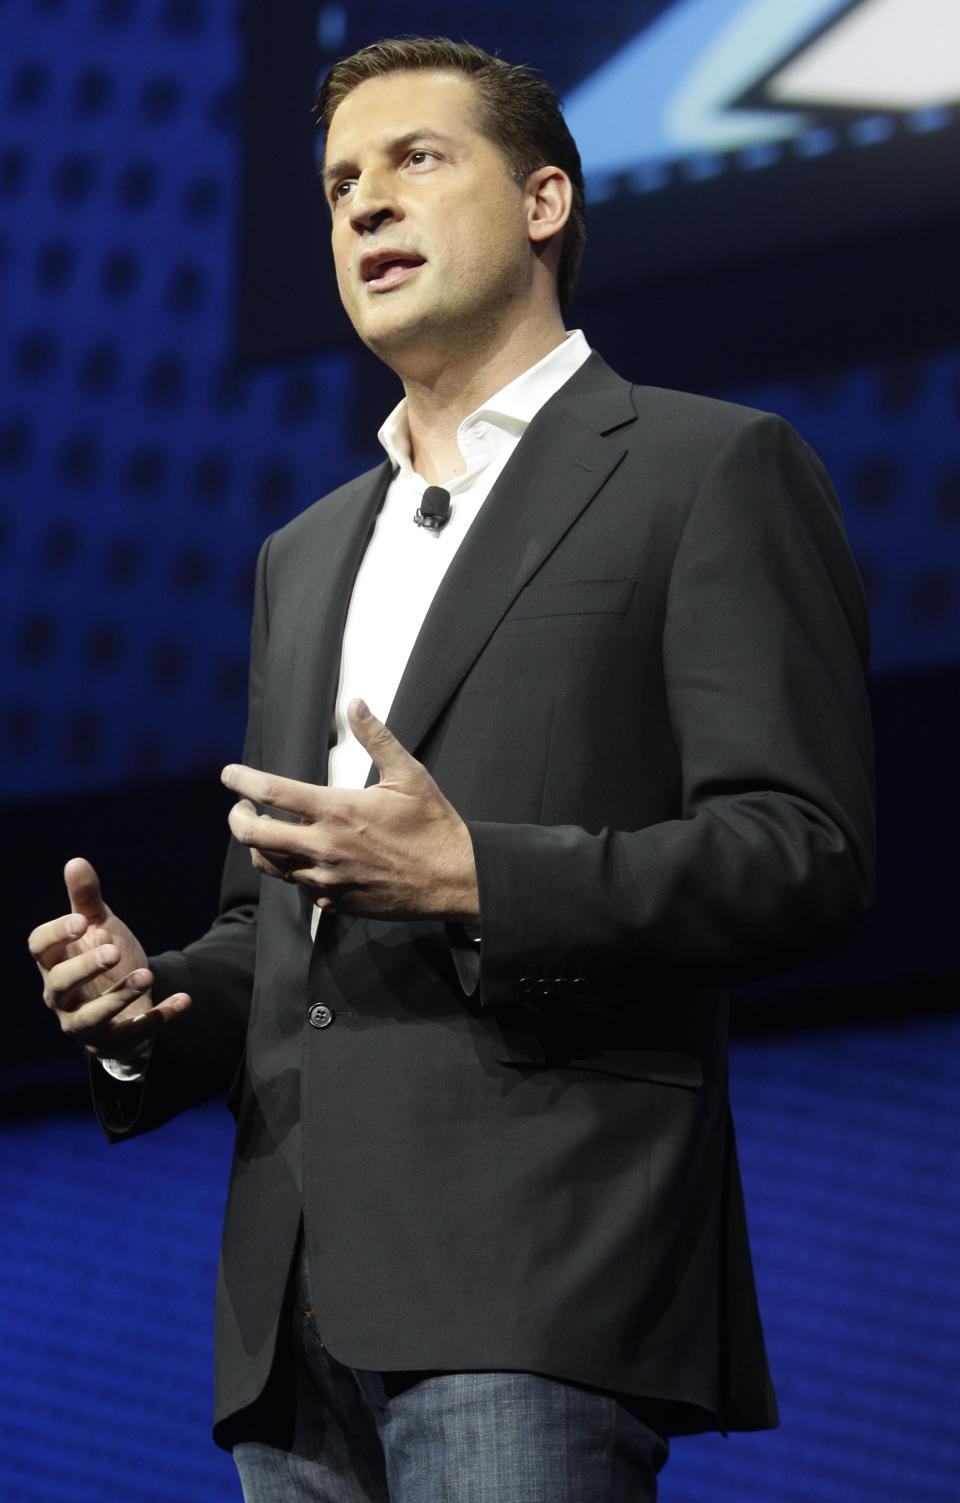 David Perry, CEO of Gaikai, speaks during a news conference to announce the Sony Playstation 4 Wednesday, Feb. 20, 2013, in New York. (AP Photo/Frank Franklin II)